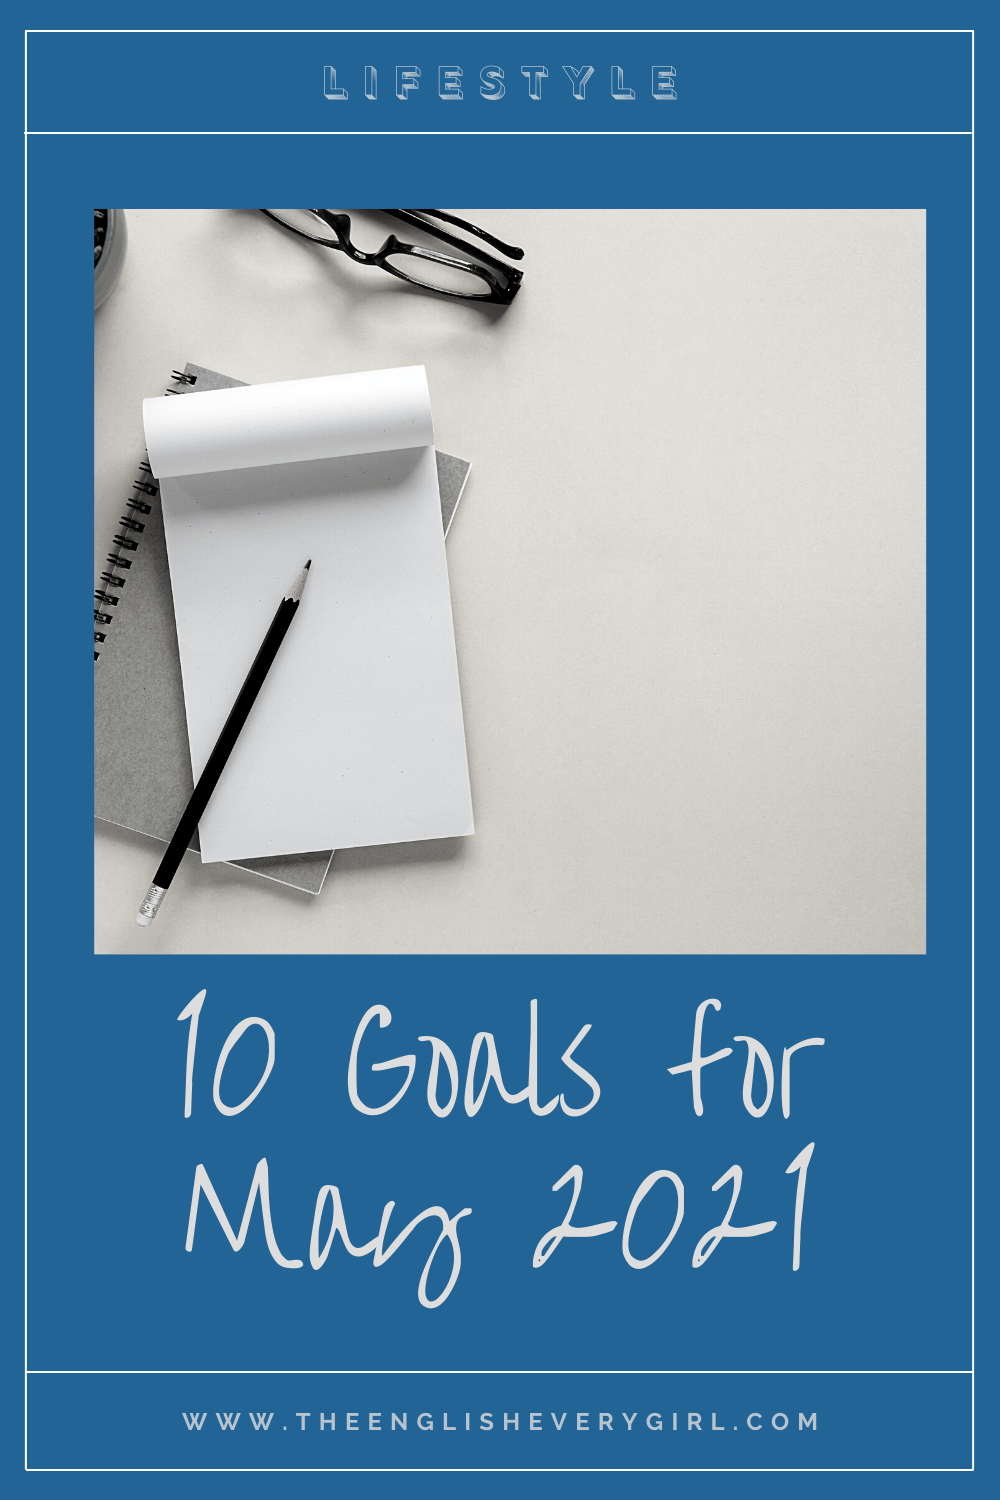 10-goals-for-may-2021-pinterest